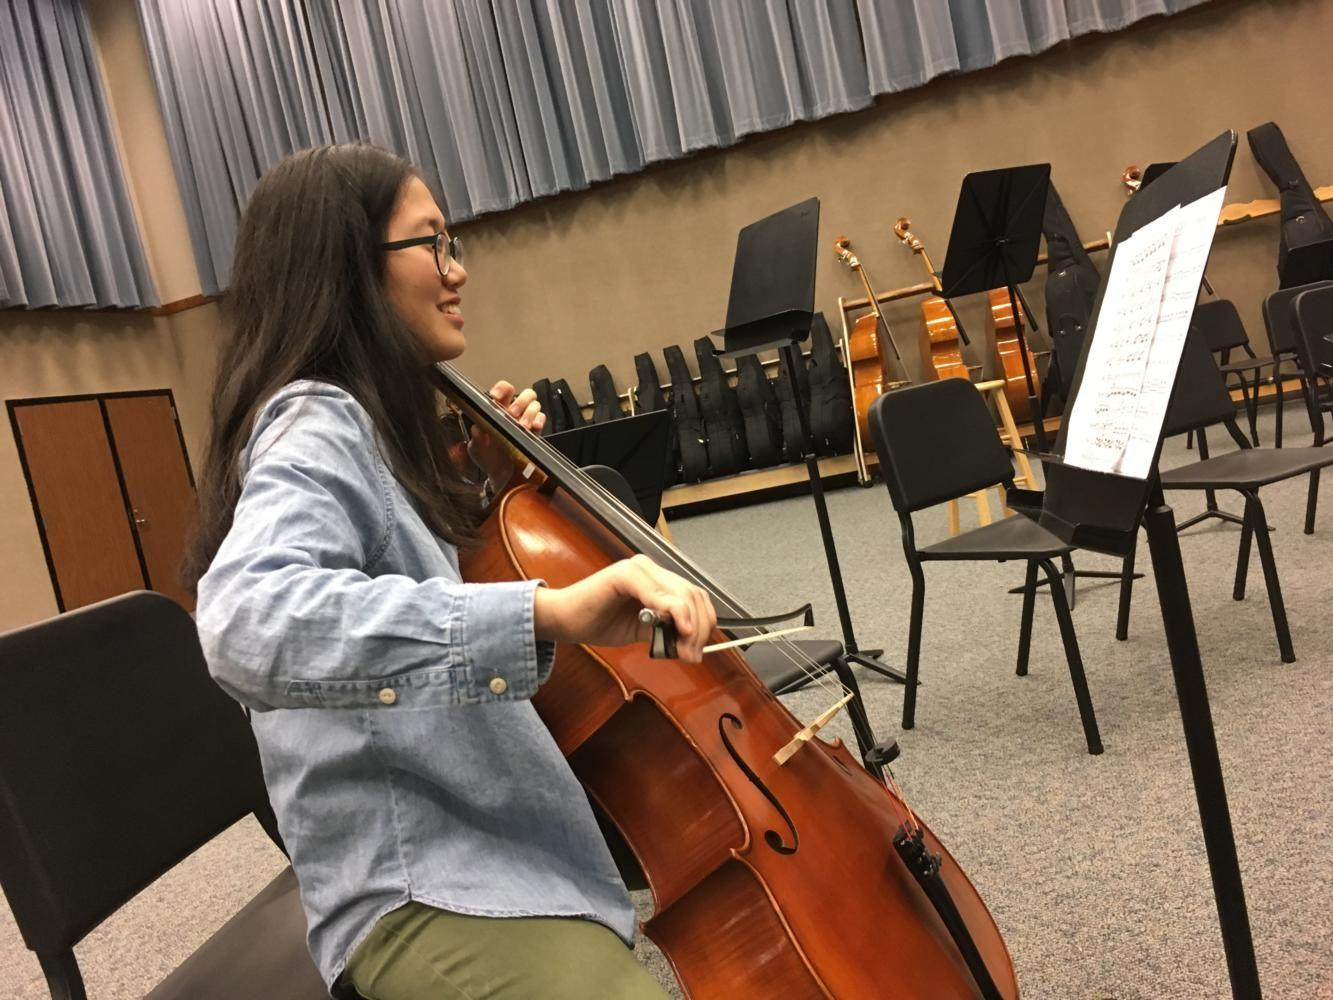 Selin+Oh%2C+Camerata+cellist+and+junior%2C+practices+her+cello+in+the+orchestra+room+during+SRT+as+a+part+of+small-group+rehearsals.+Oh+said+she+is+excited+to+be+playing+a+variety+of+tunes+from+different+operas+with+the+Symphony+orchestra.